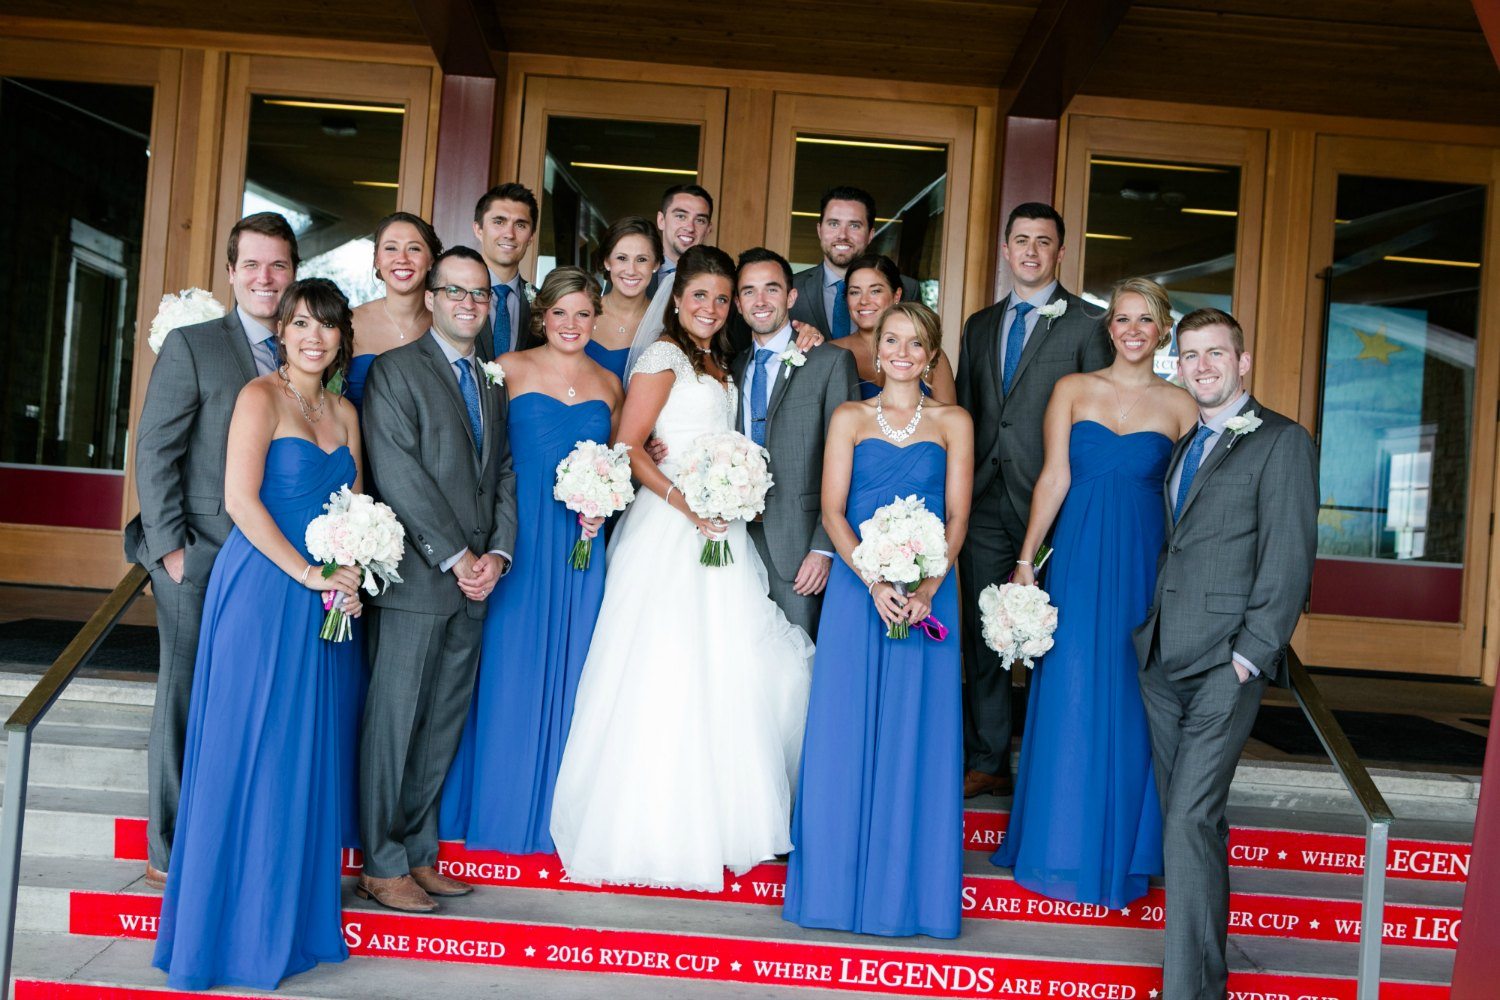 Wedding party at the front entrance of Hazeltine National Golf Club